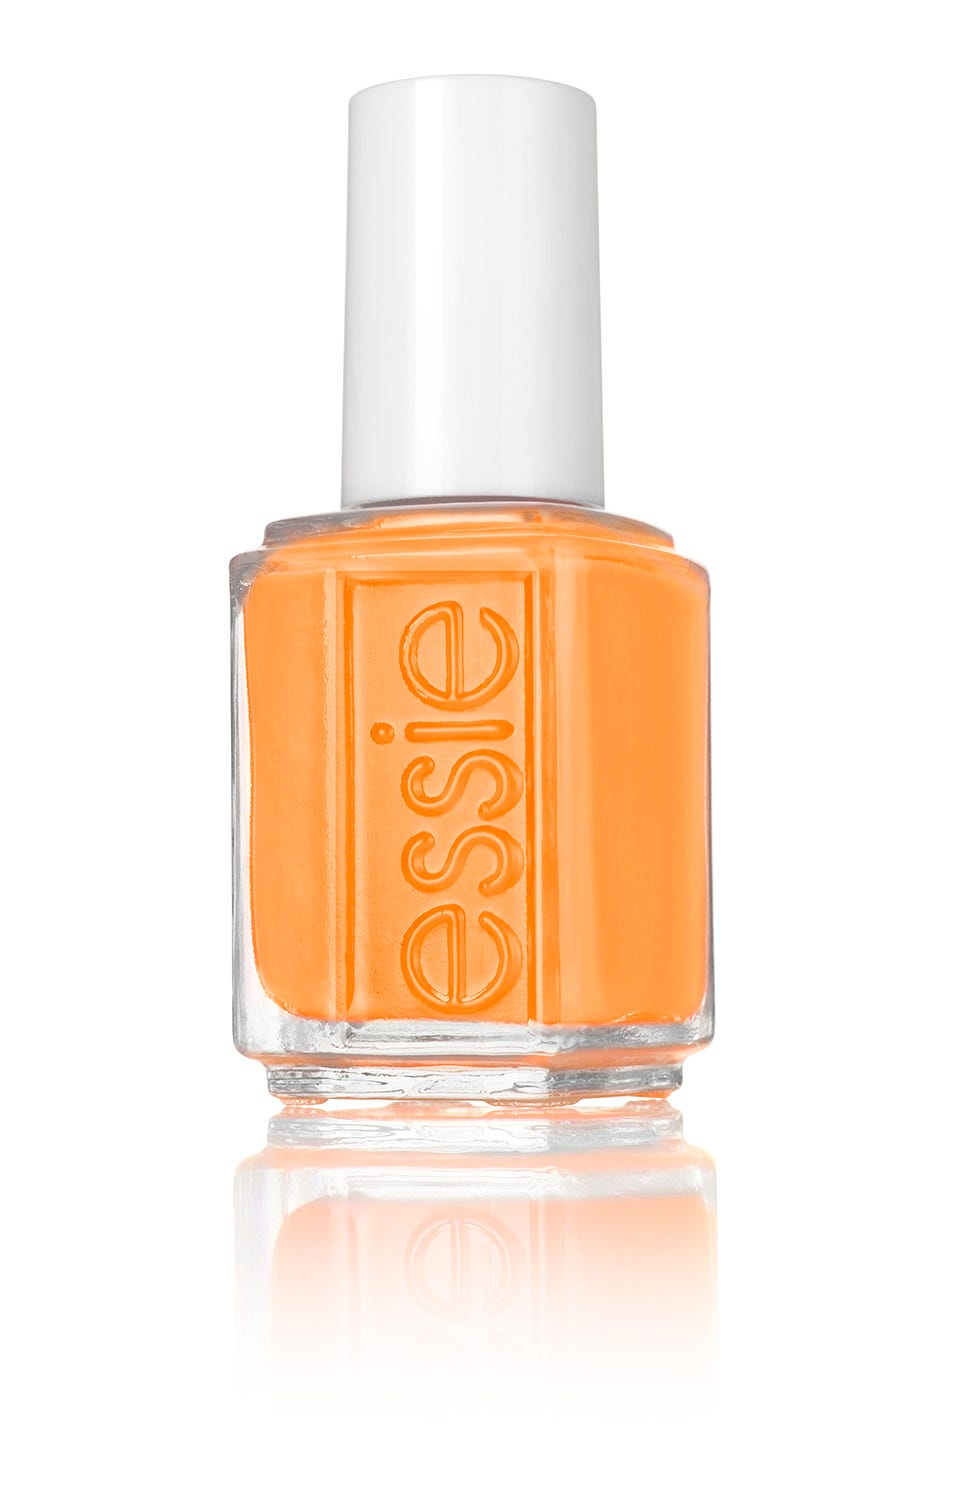 New Essie Summer Nail Polish Colors To Buy At Ulta 2019